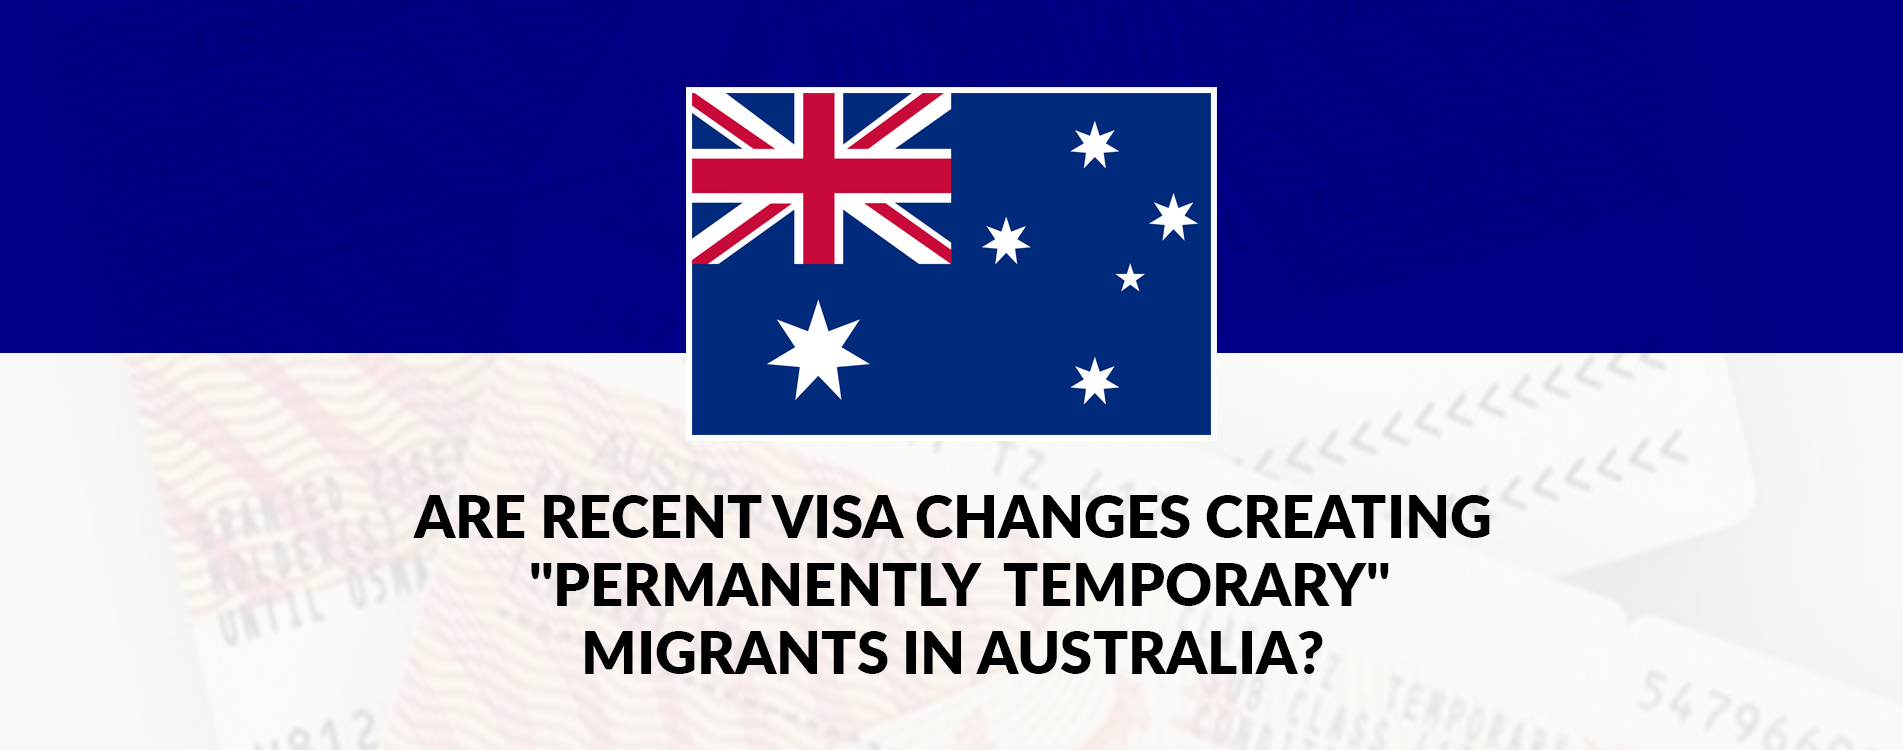 """Are Recent Visa Changes Creating """"Permanently Temporary"""" Migrants in Australia?"""